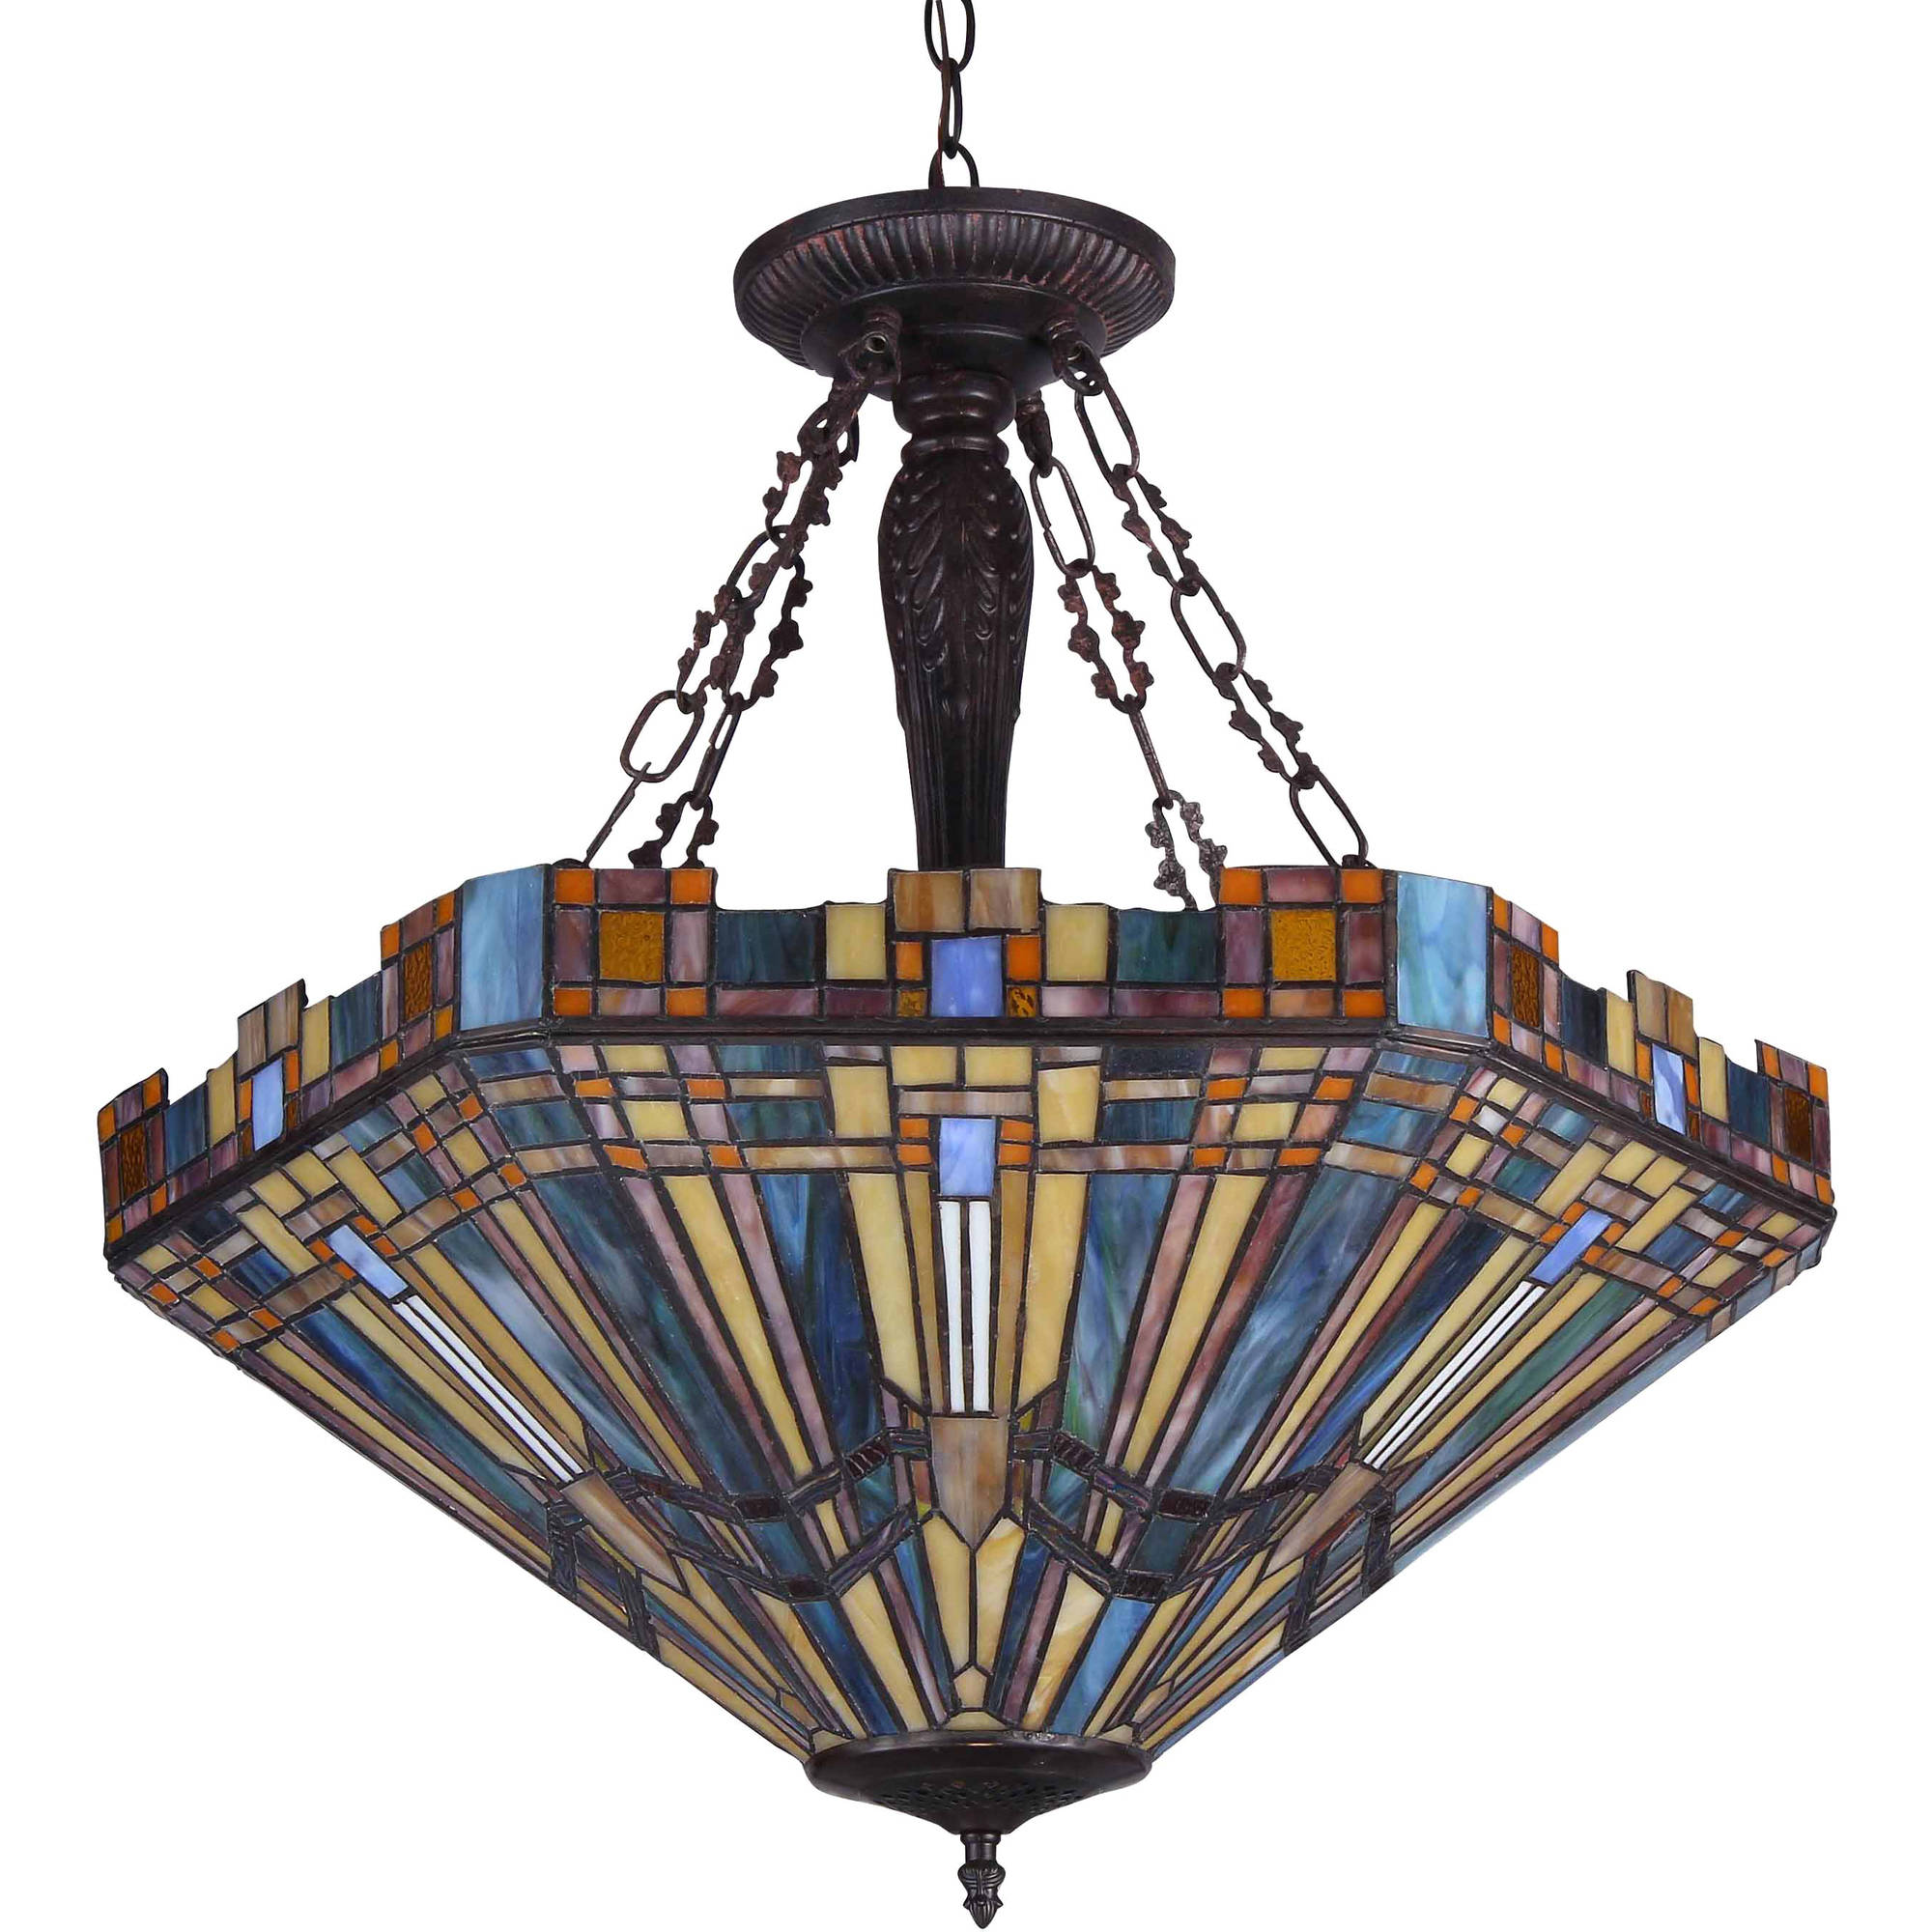 Chloe lighting saxon tiffany style 3 light mission inverted ceiling pendant fixture with 24 shade